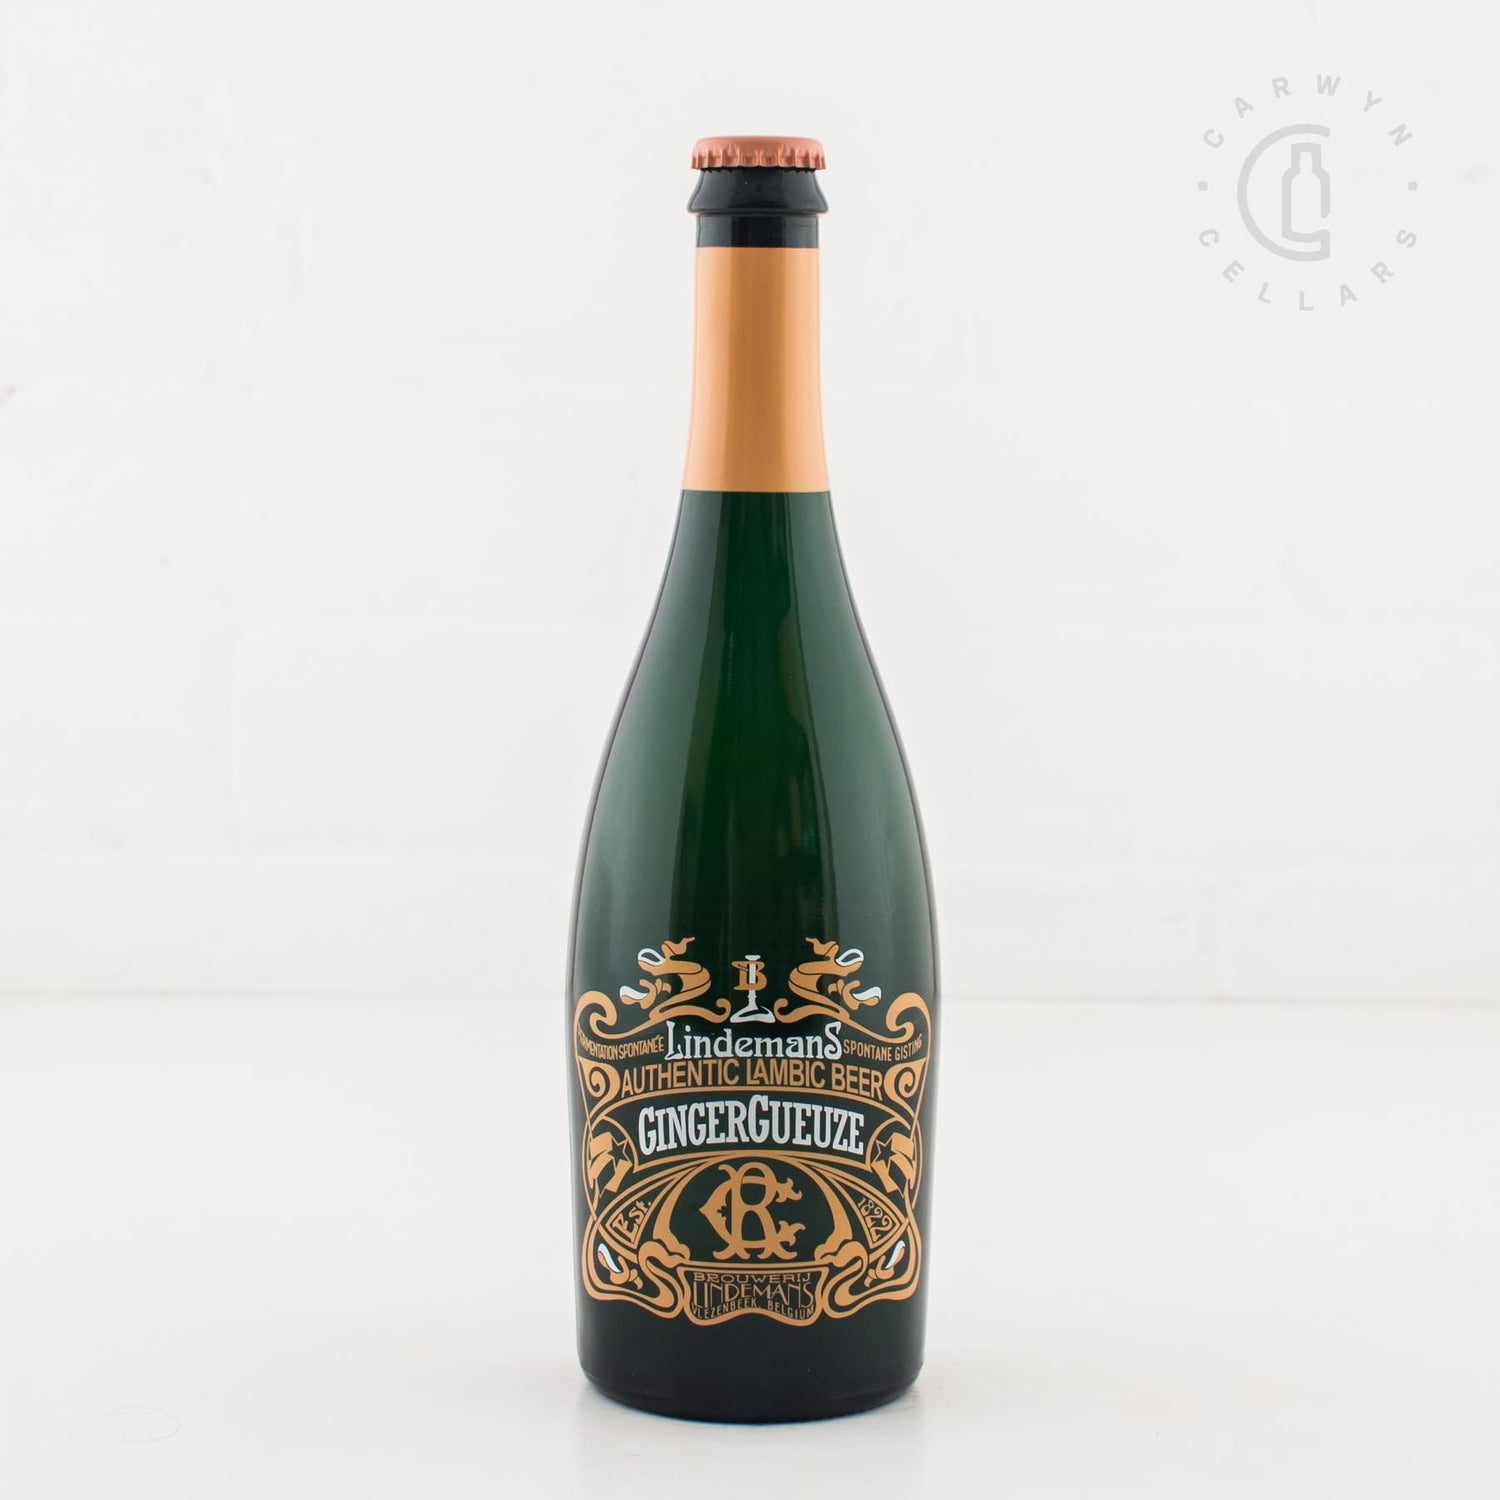 Lindemans GingerGueuze